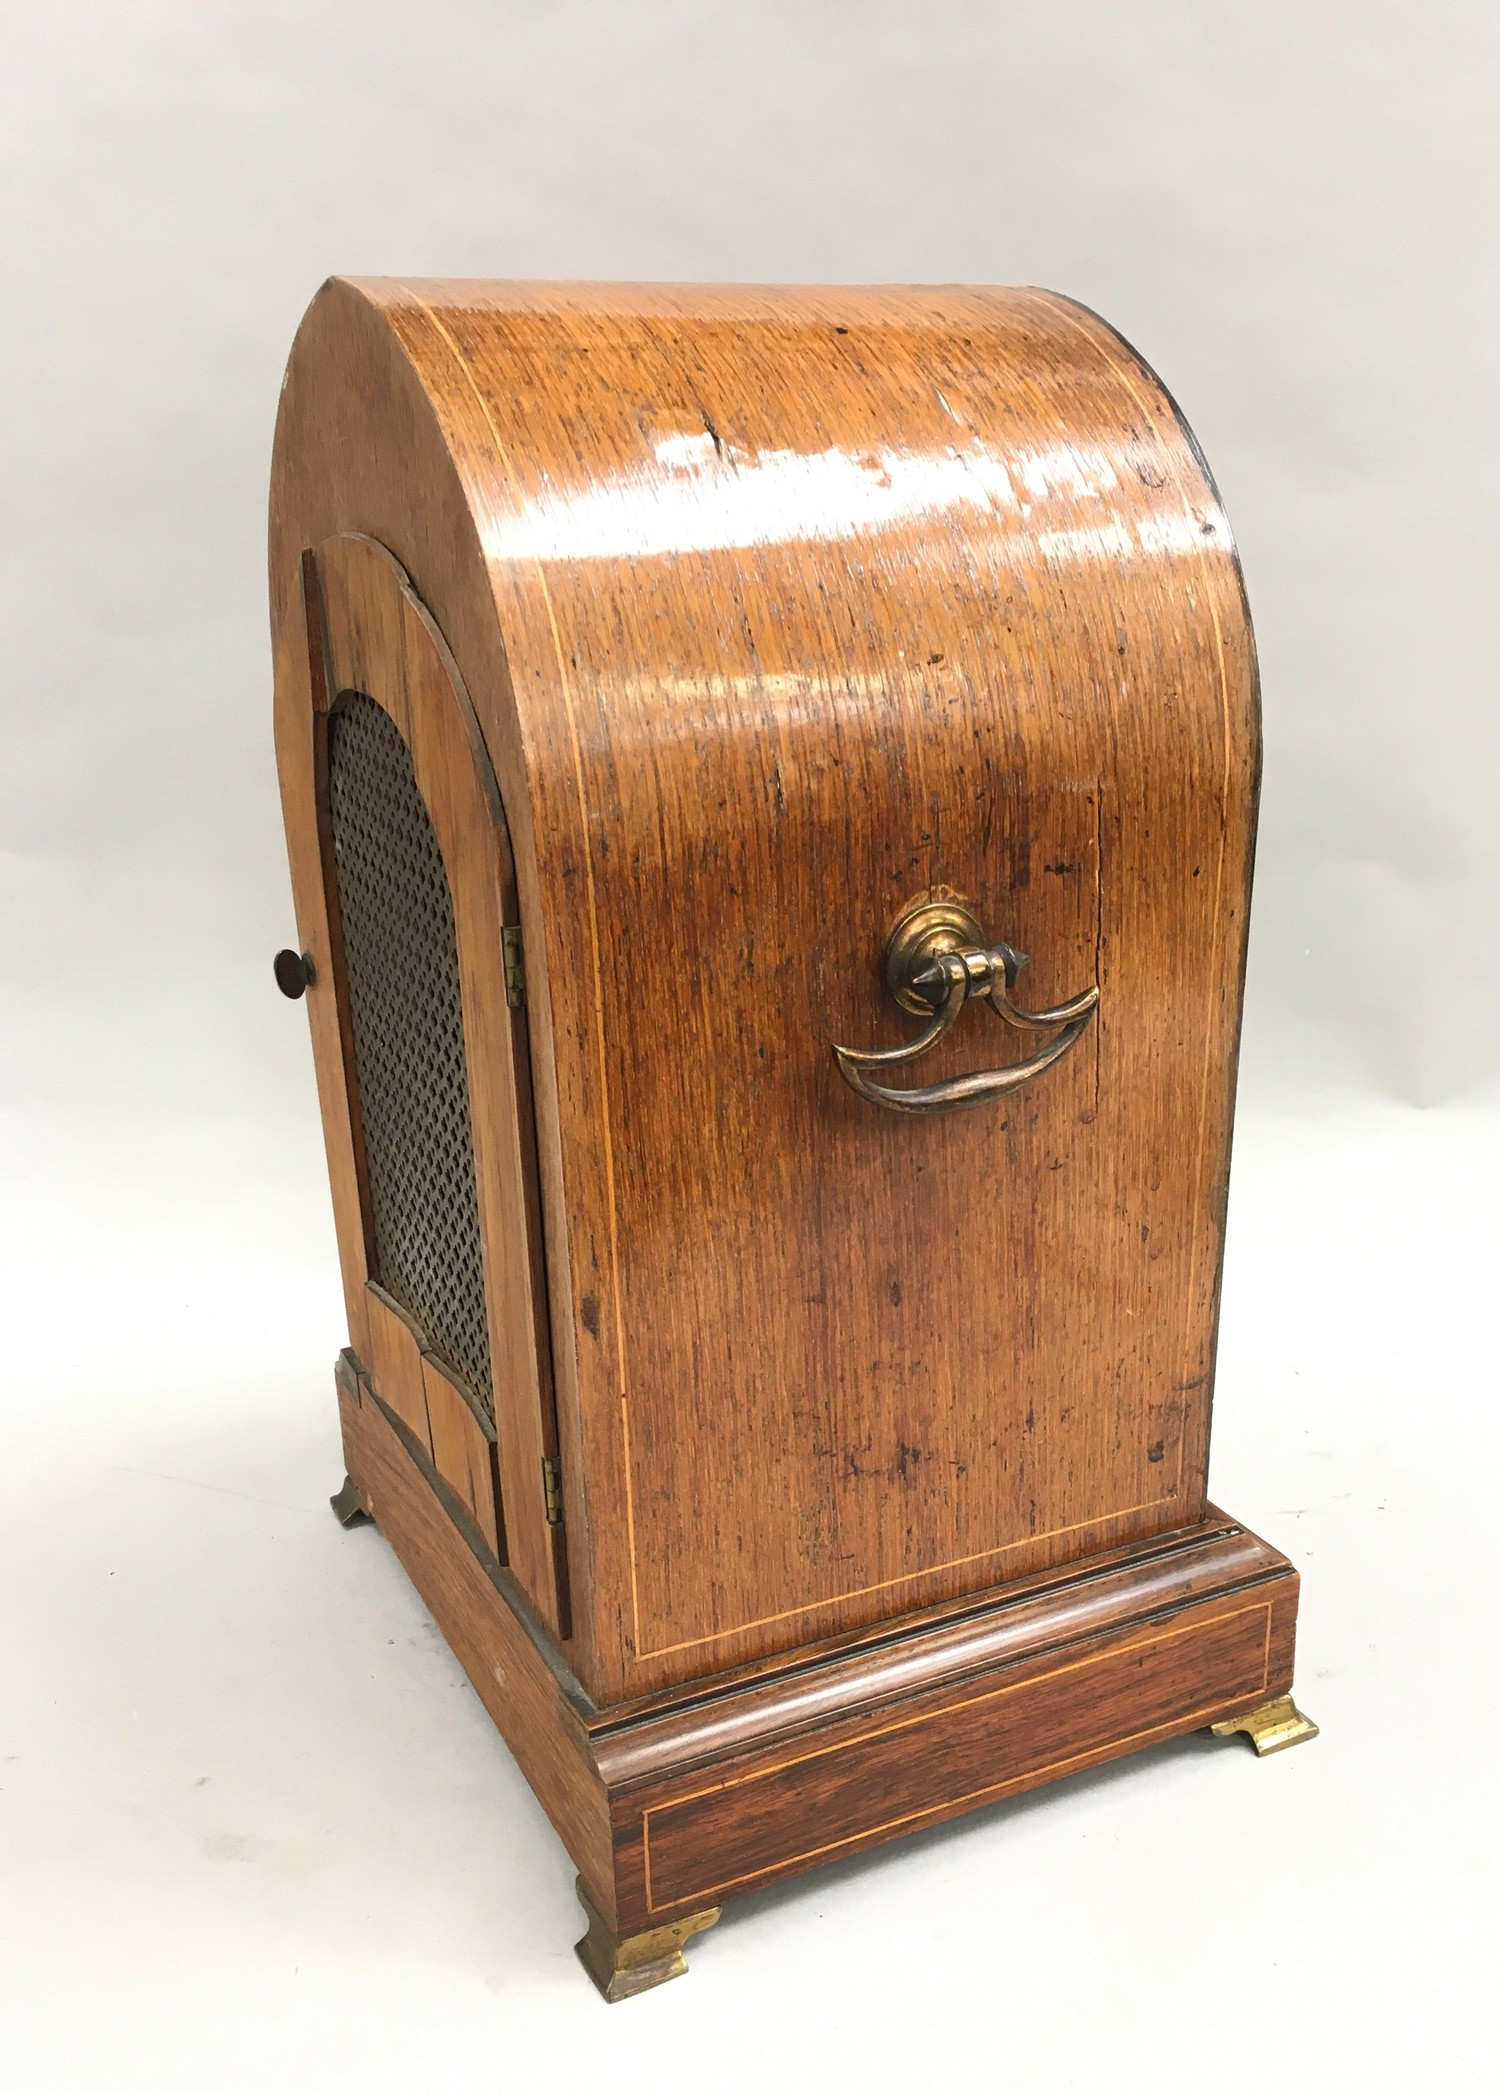 Edwardian in laid dome shape striking mantle clock,with brass face on brass feet and side carrying - Image 7 of 8